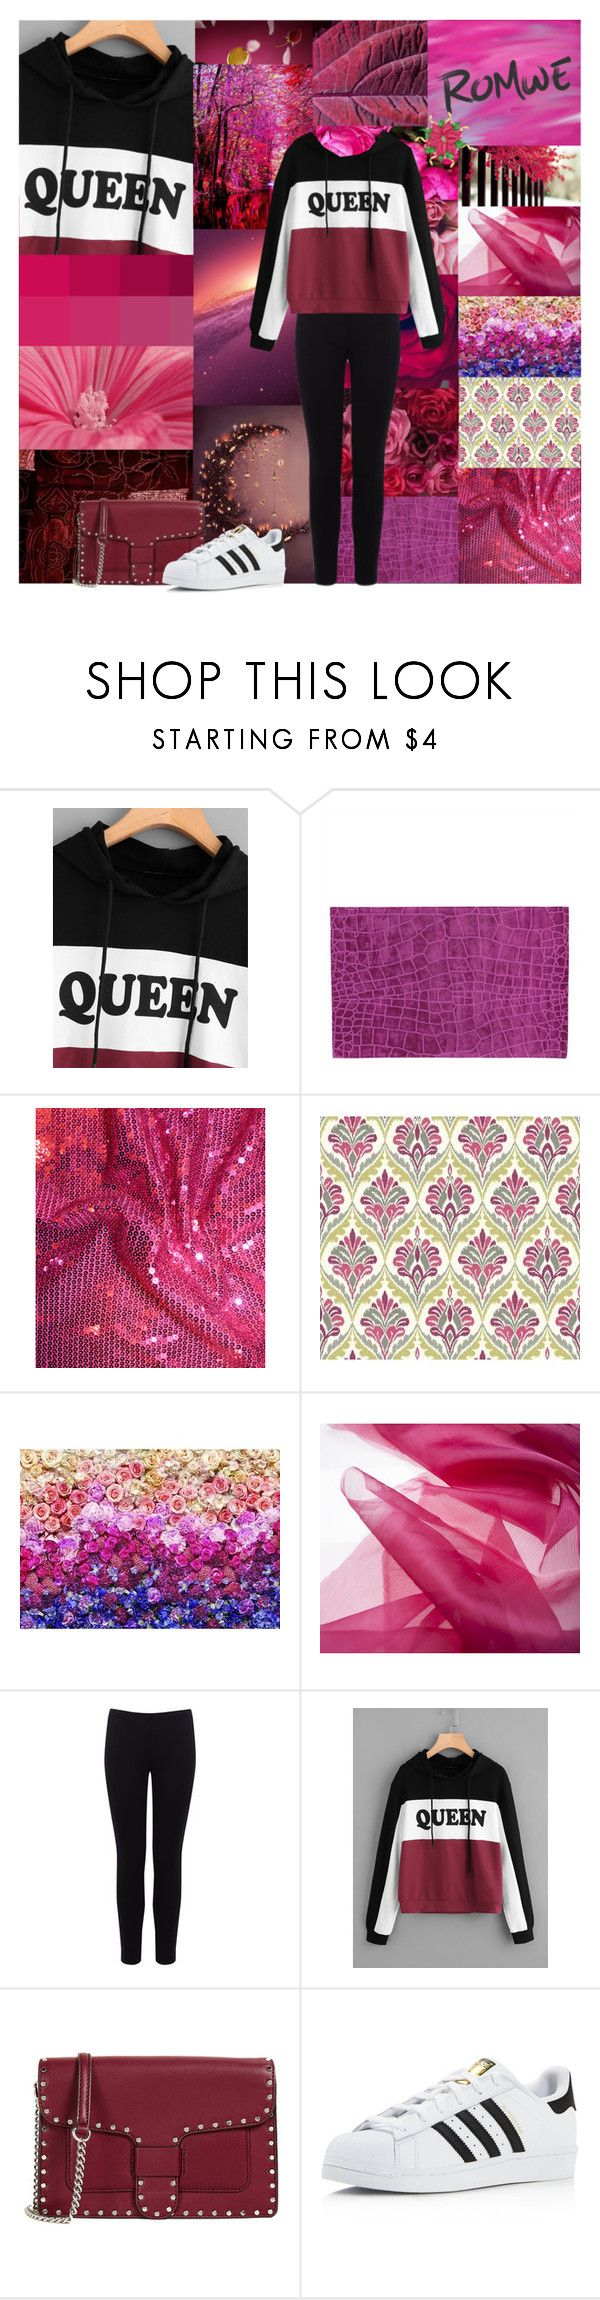 """""""Drama Queen"""" by kailey-muter ❤ liked on Polyvore featuring York Wallcoverings, Komar, Warehouse, Rebecca Minkoff, adidas, drama, romwe, queen and Gossip"""